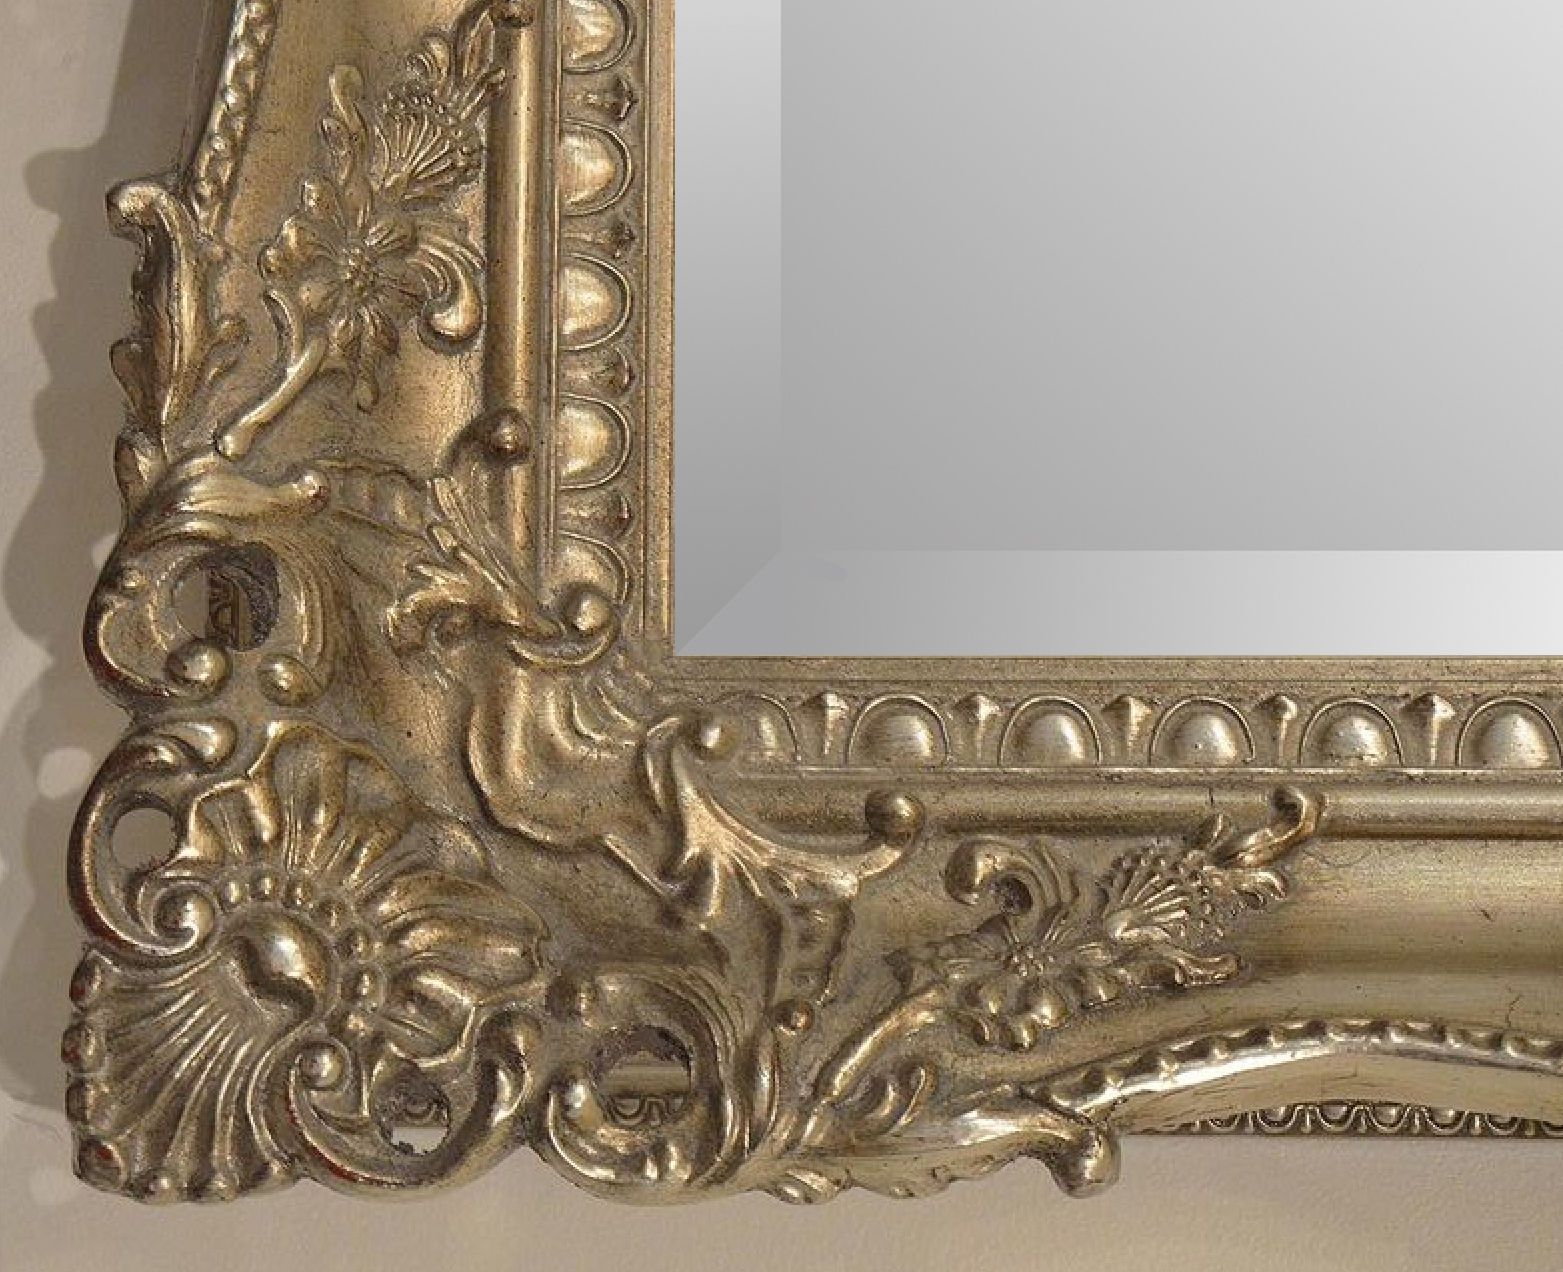 X Large Bright Metallic Silver Ornate Decorative Wall